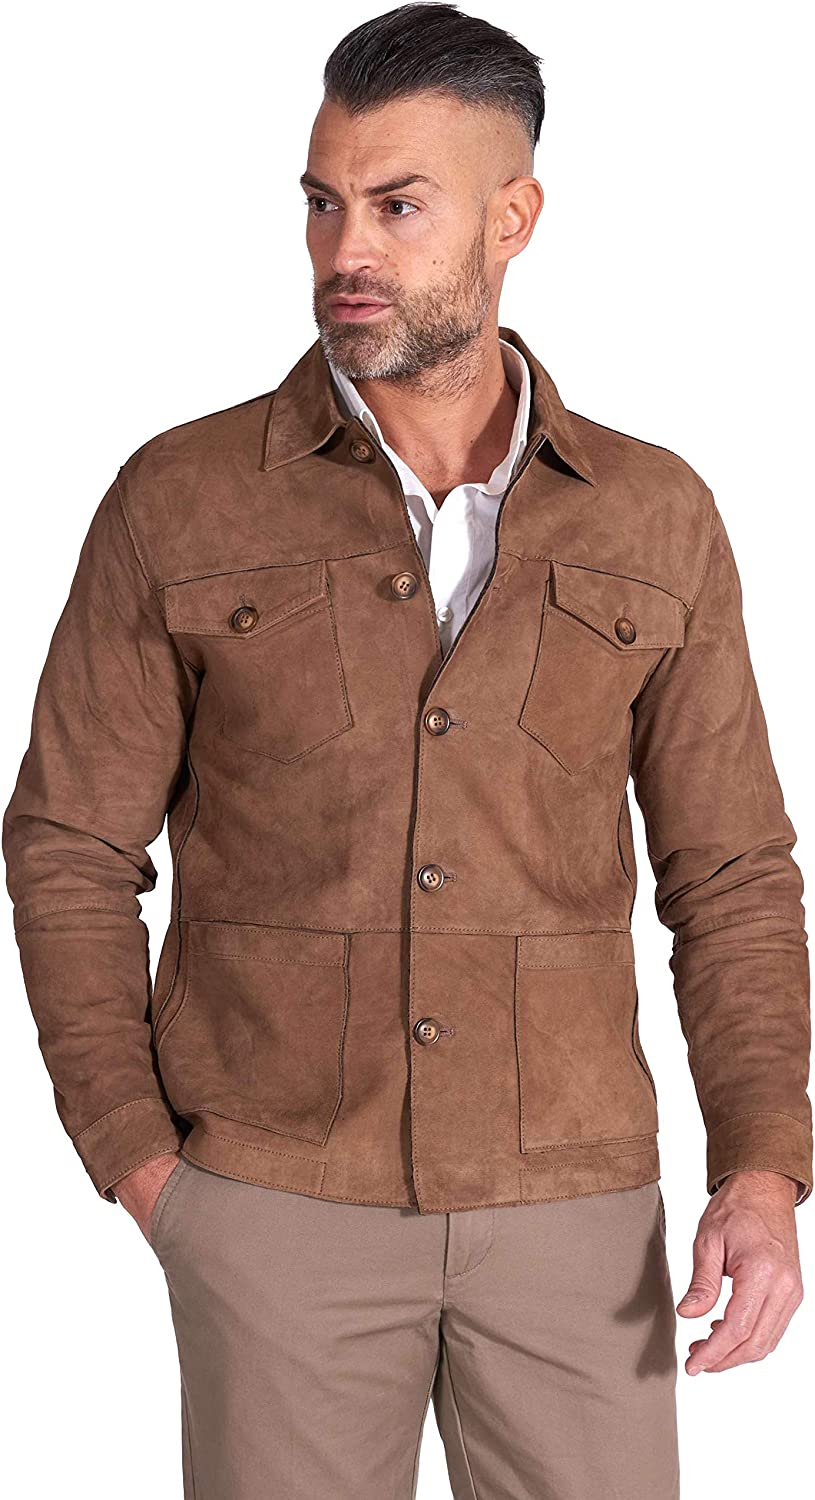 Tan suede leather jacket bonded fabric lining